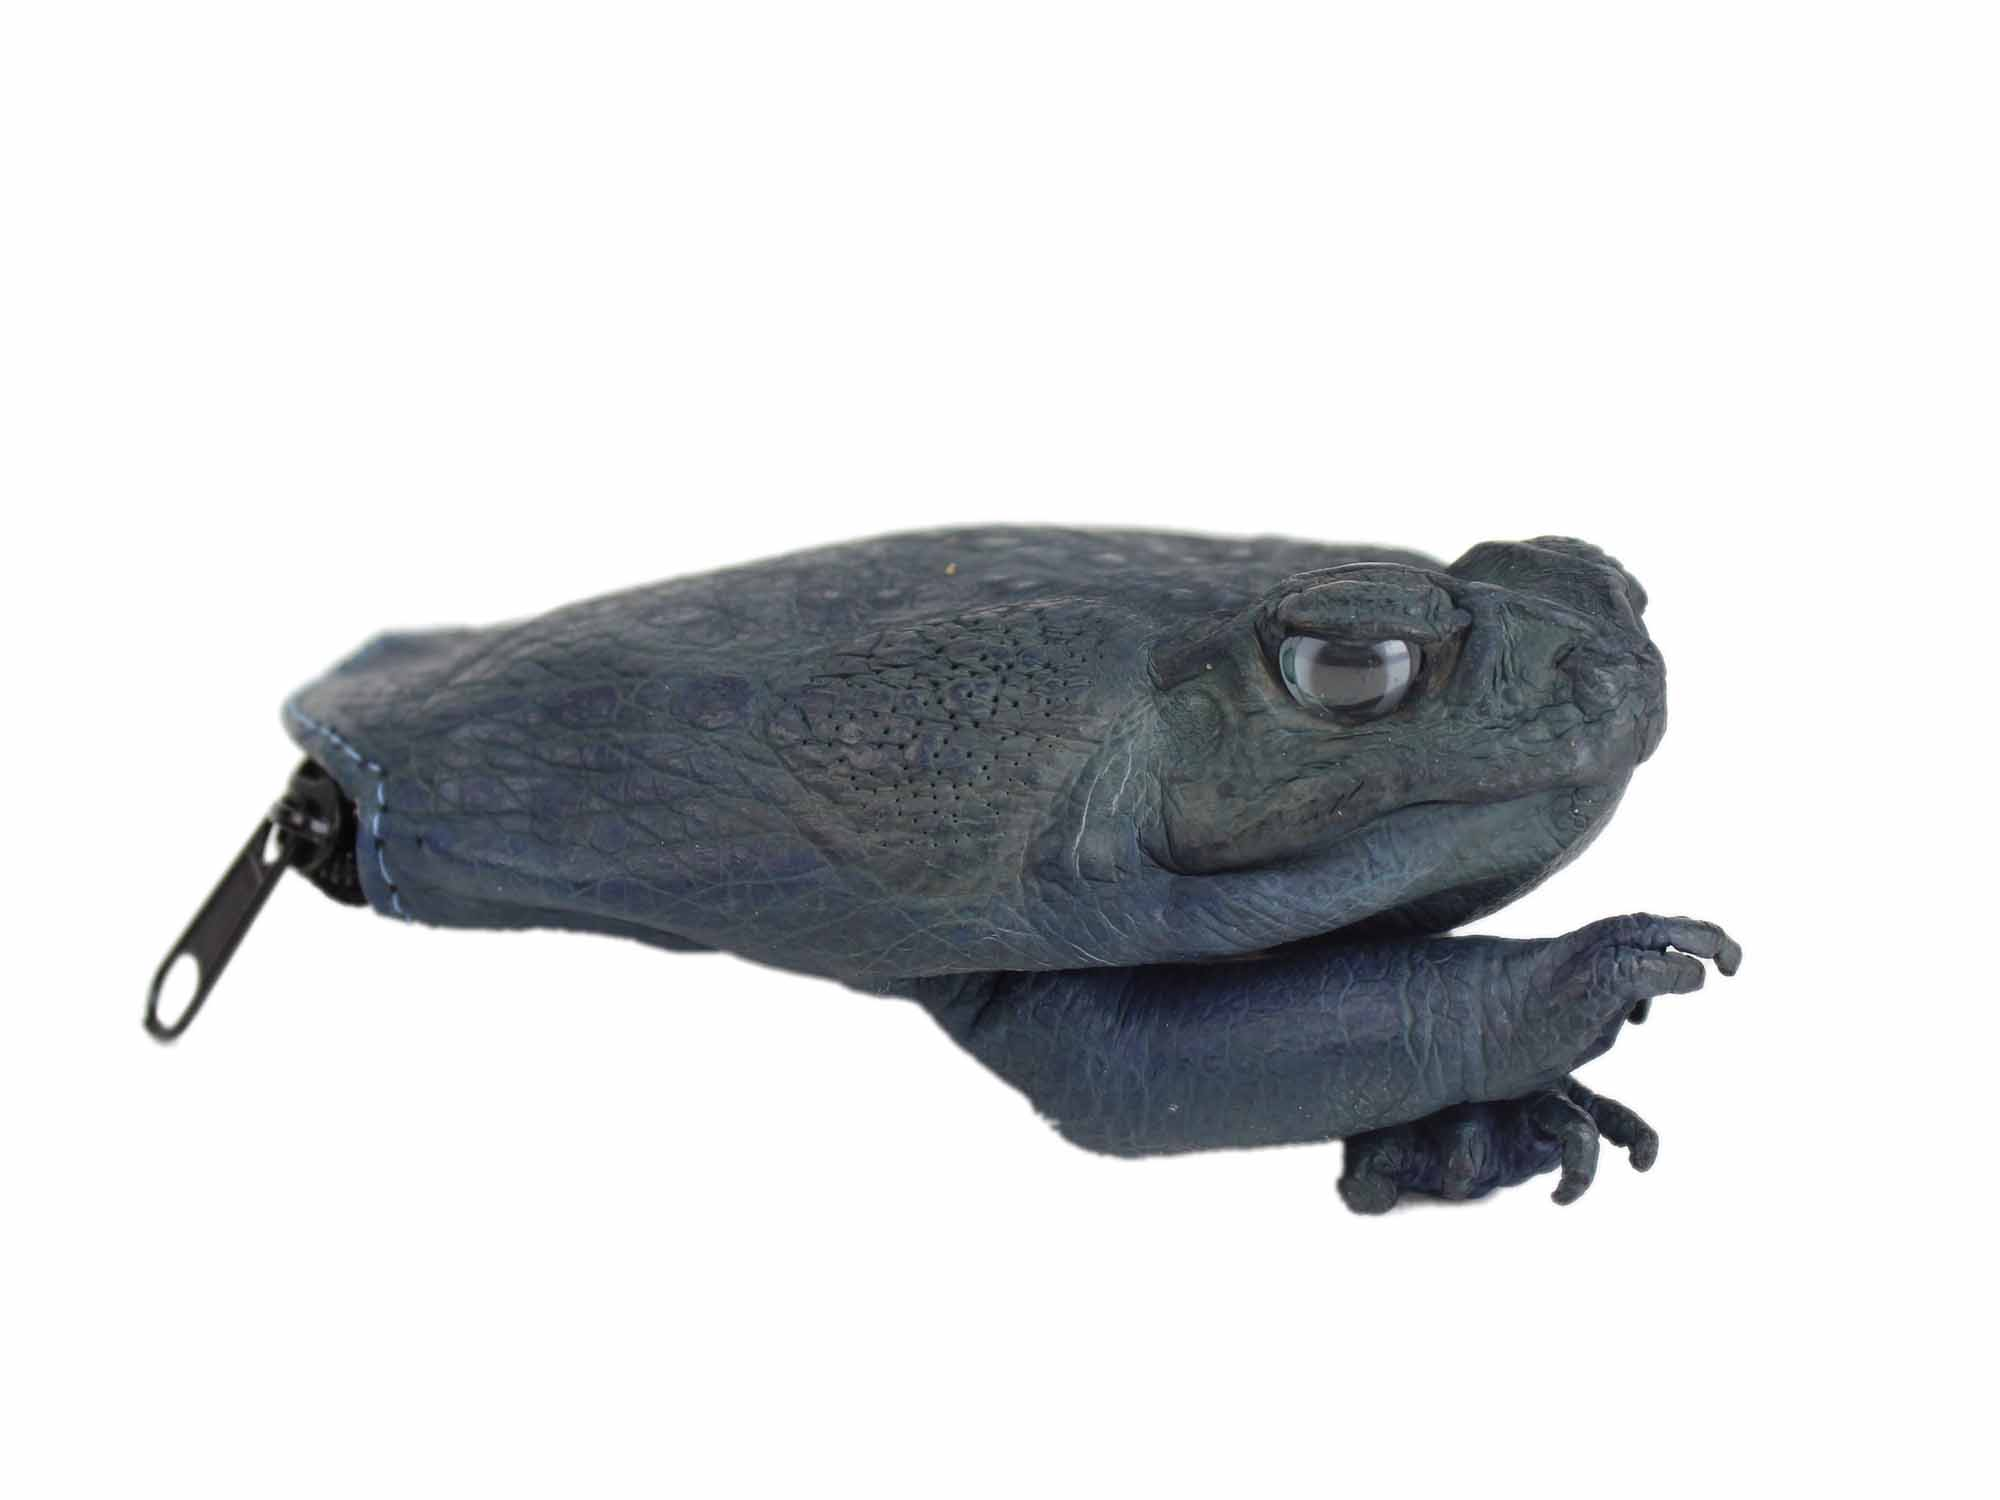 Dyed Cane Toad Coin Pouch: Medium/Large: Navy Blue